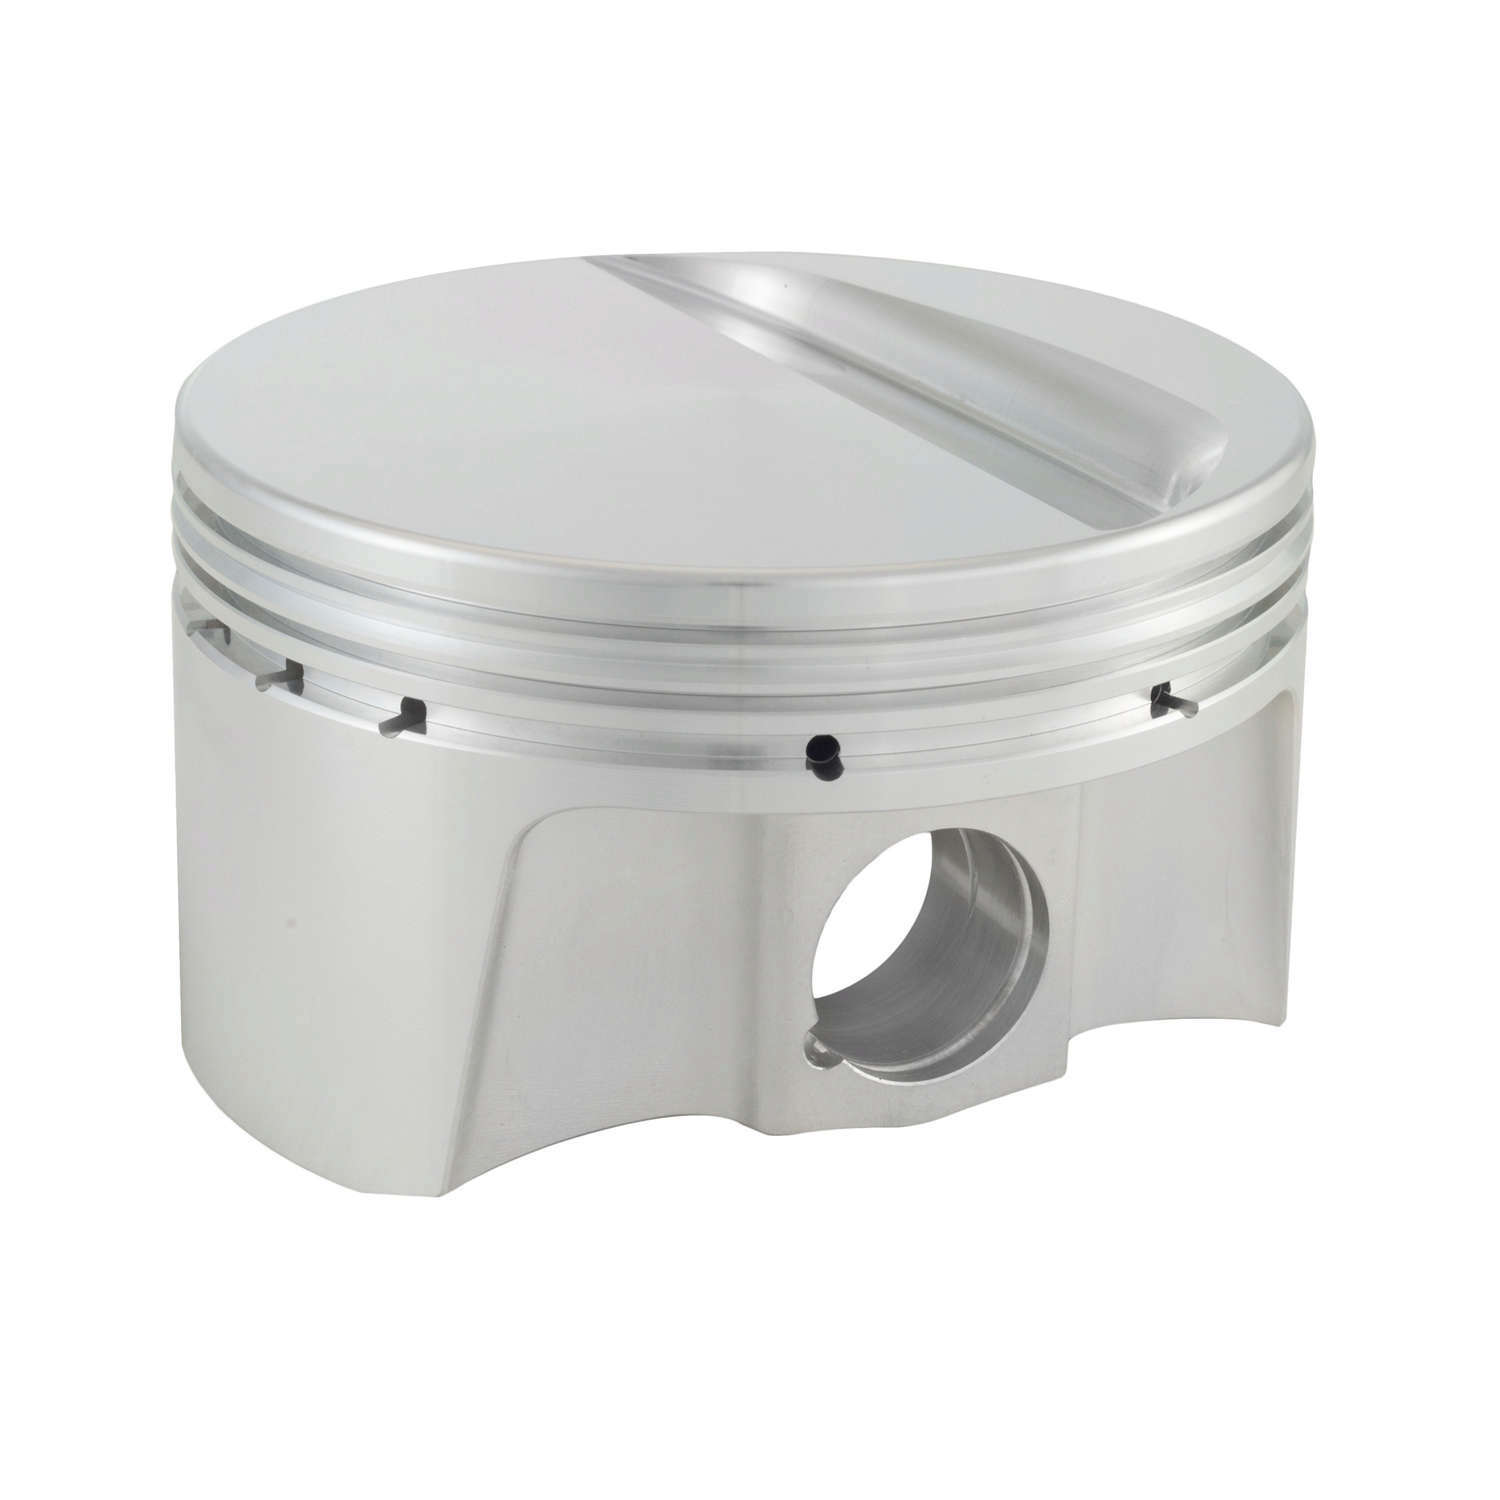 Bullet Pistons BF6010-030-8 Piston and Ring, Forged, 4.030 in Bore, 1.5 x 1.5 x 3 mm Ring Grooves, Minus 8.7 cc, Small Block Ford, Kit